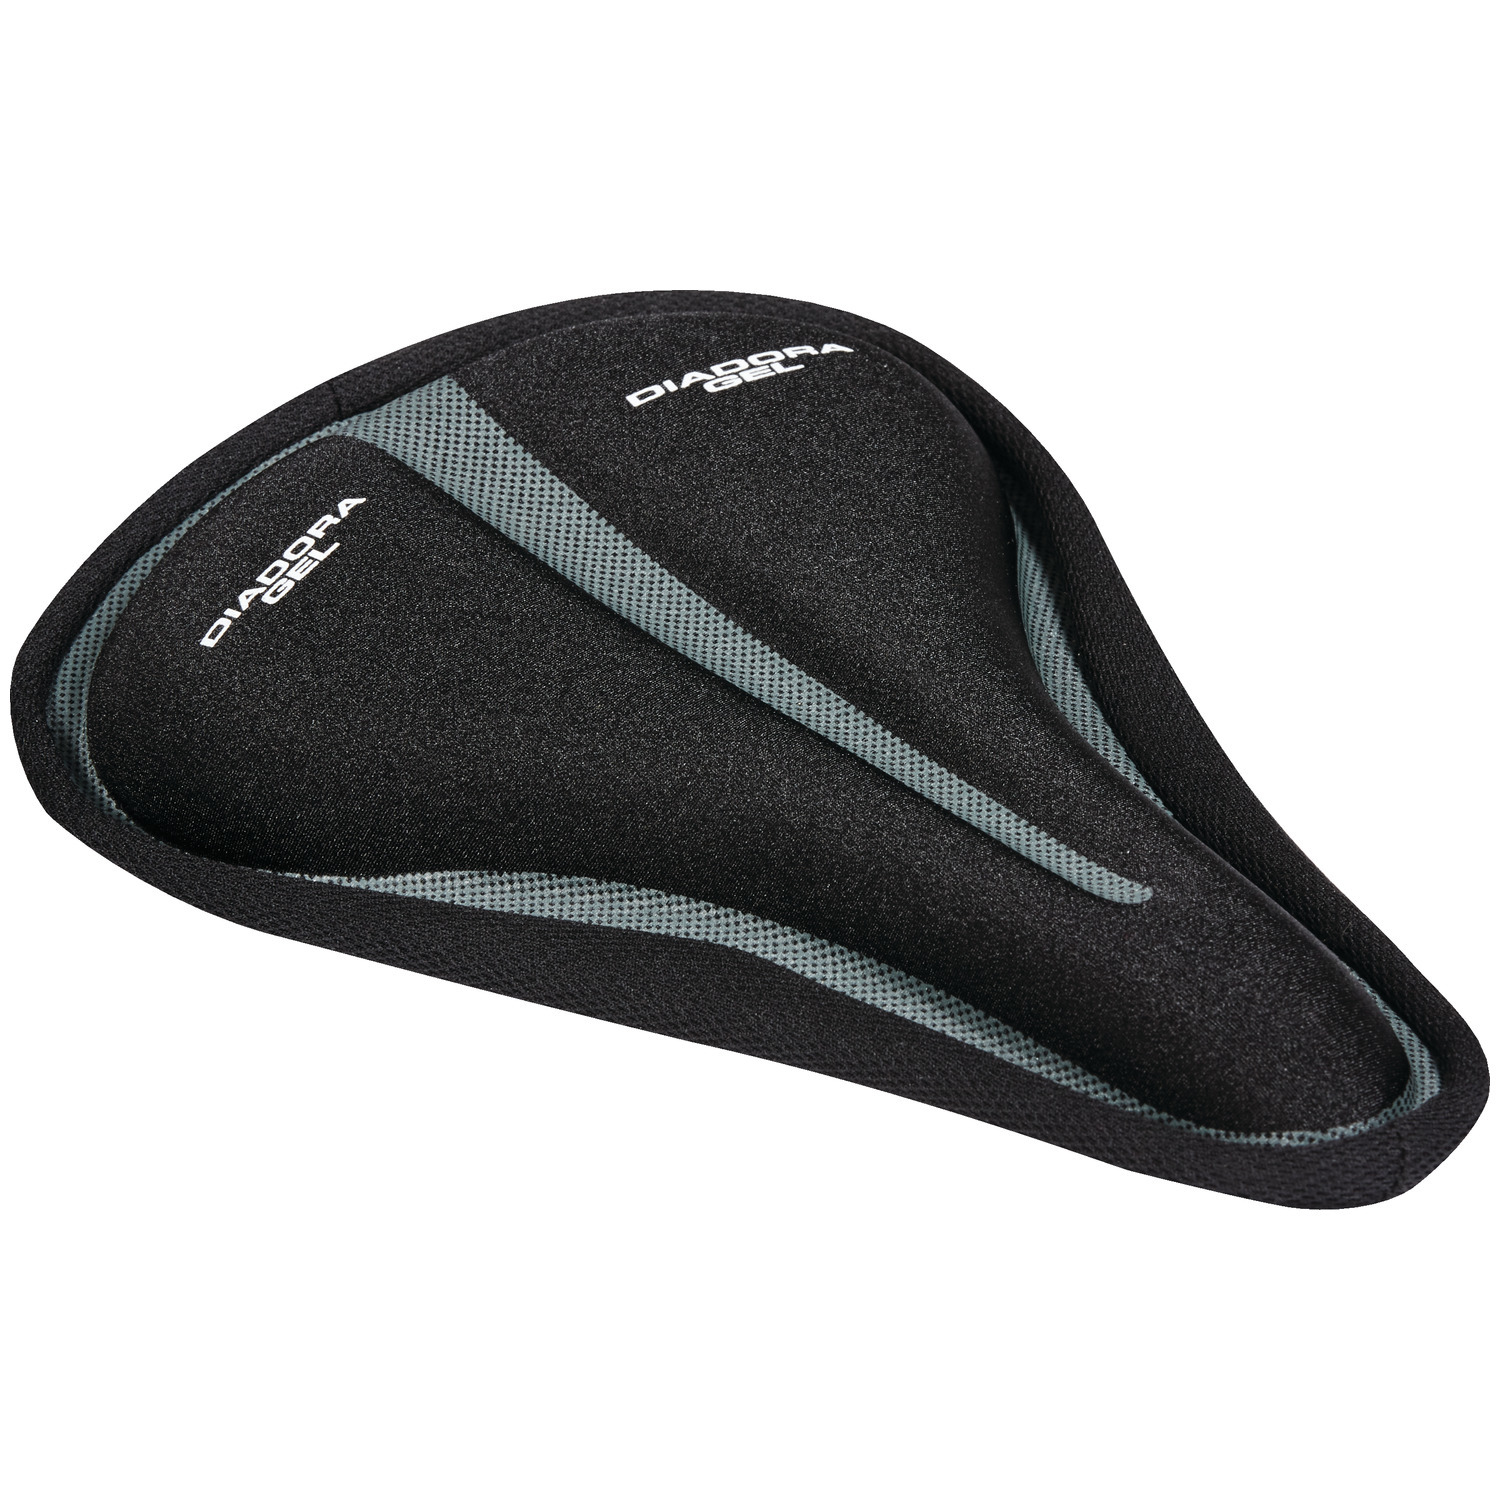 Comfort Covers For Tractors : Diadora comfort gel cover equipment bike saddles and